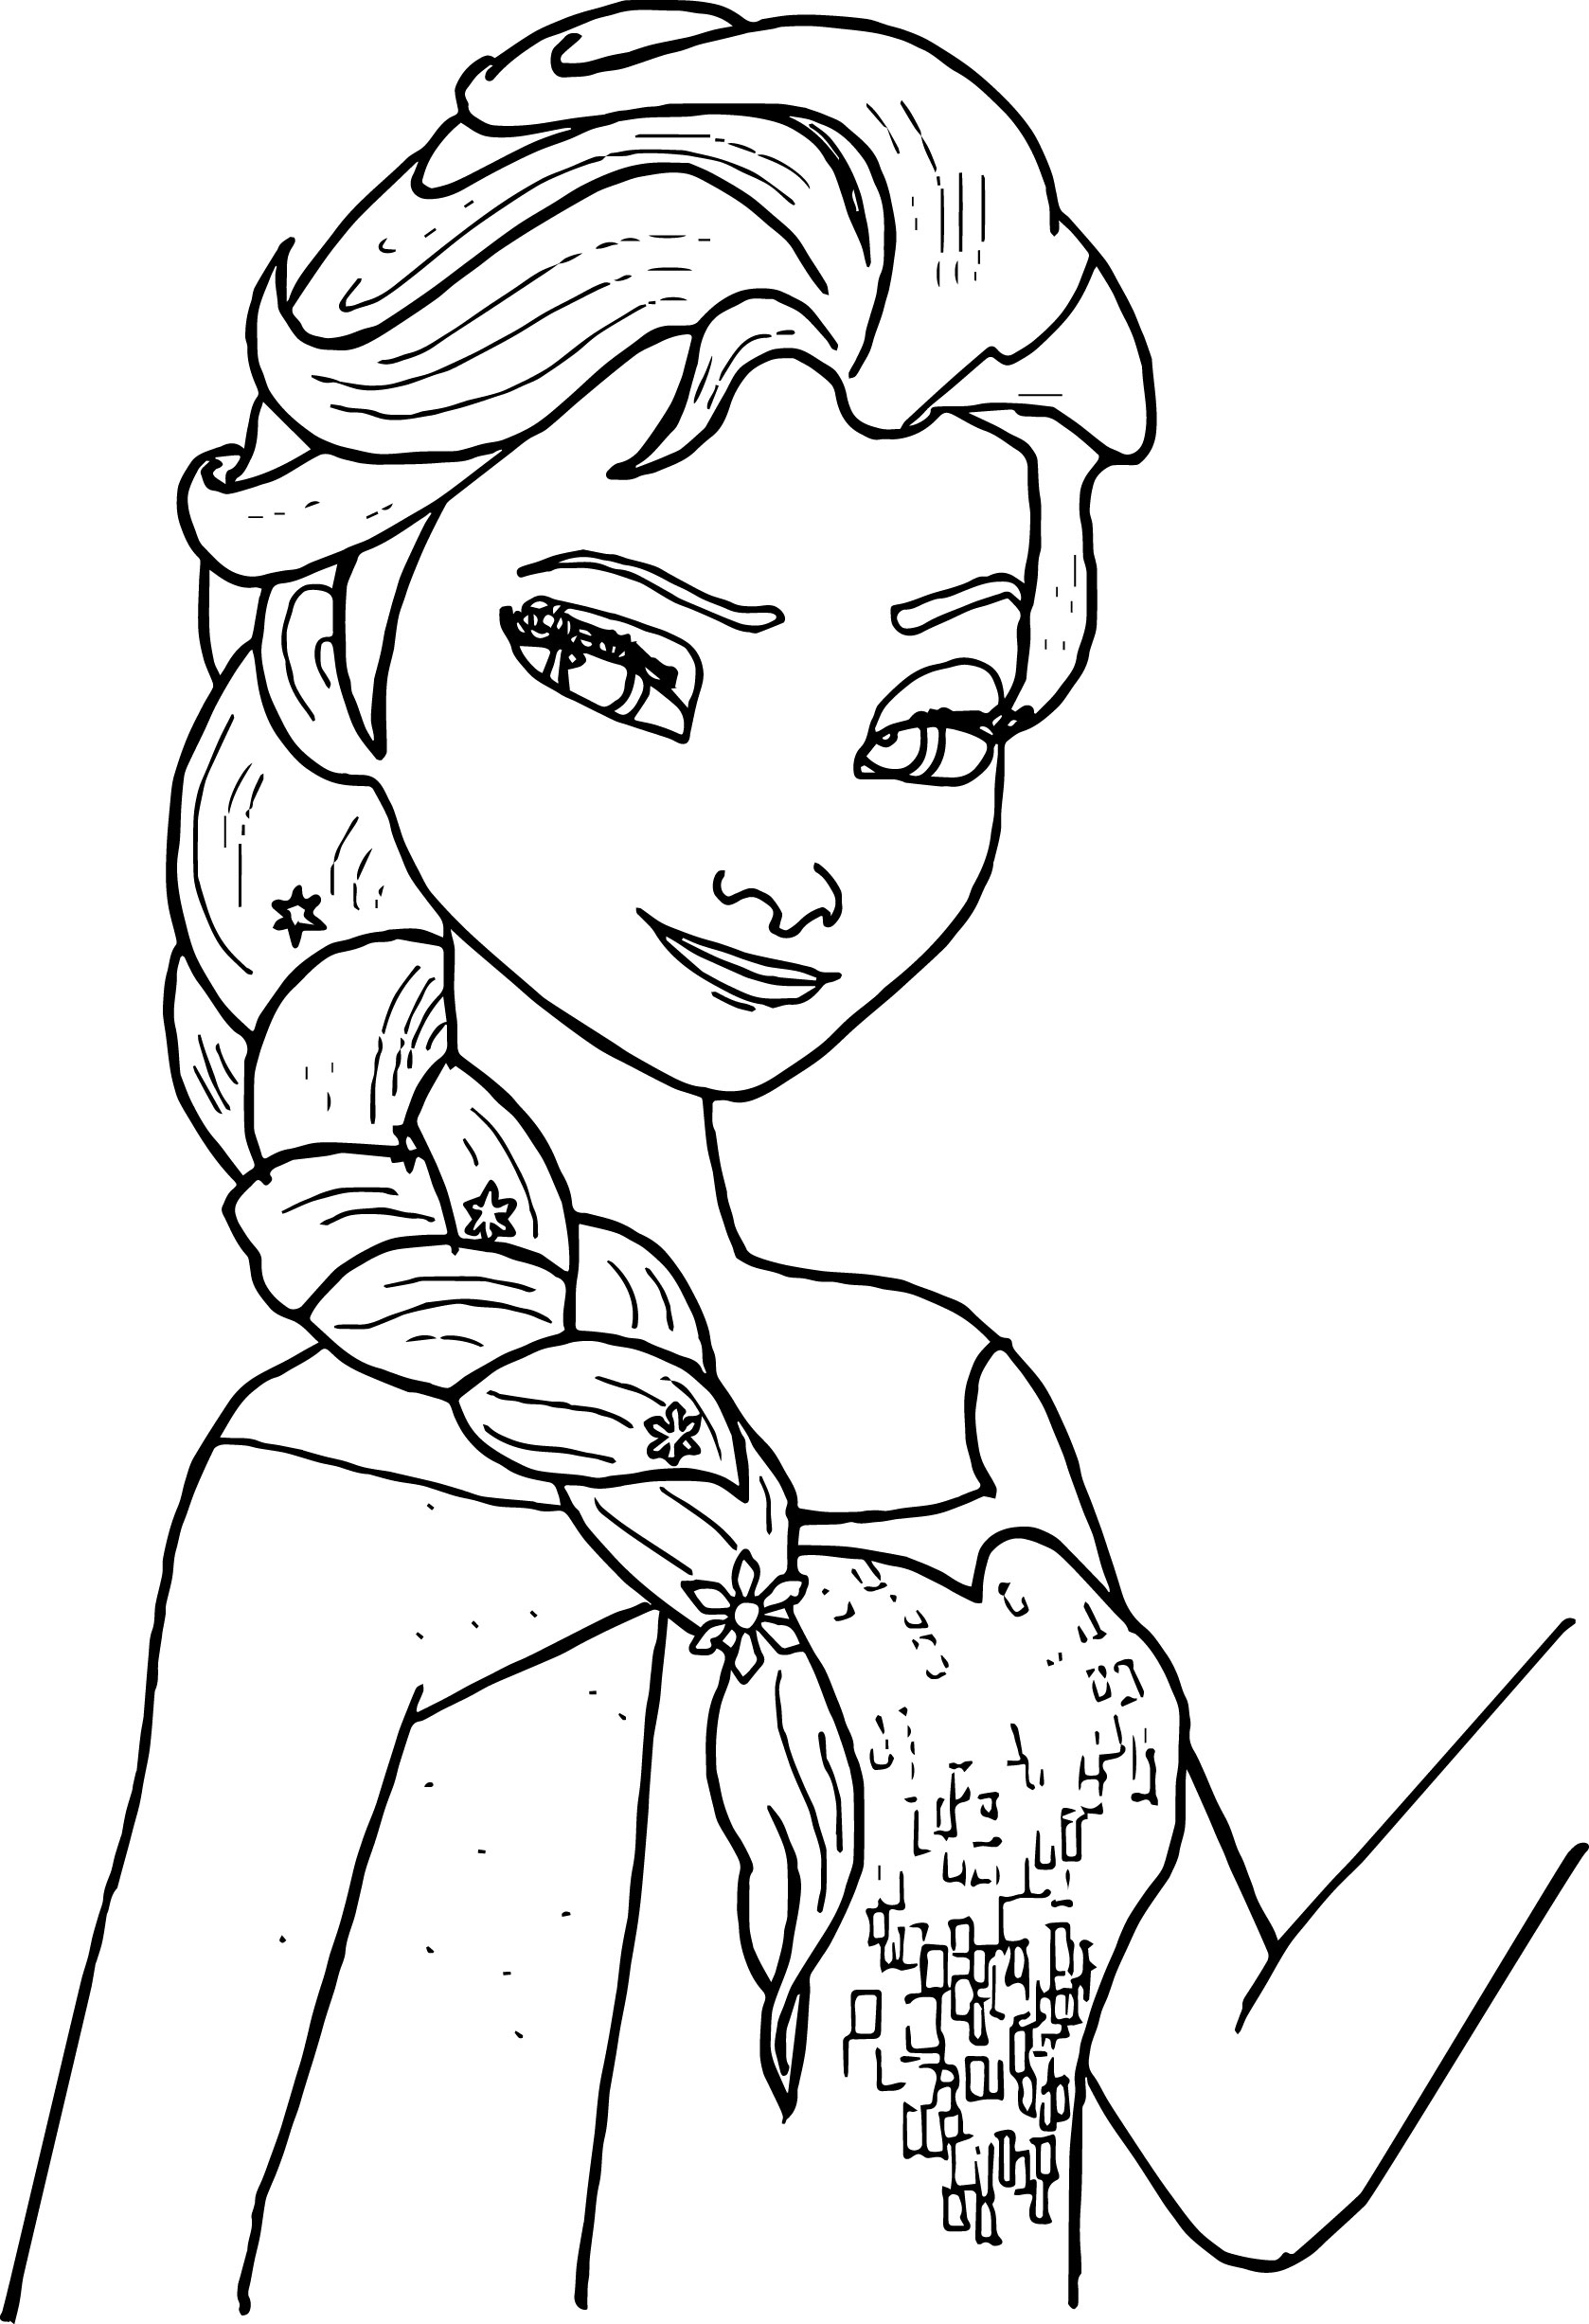 elsa coloring page printables - Elsa And Anna Coloring Pages